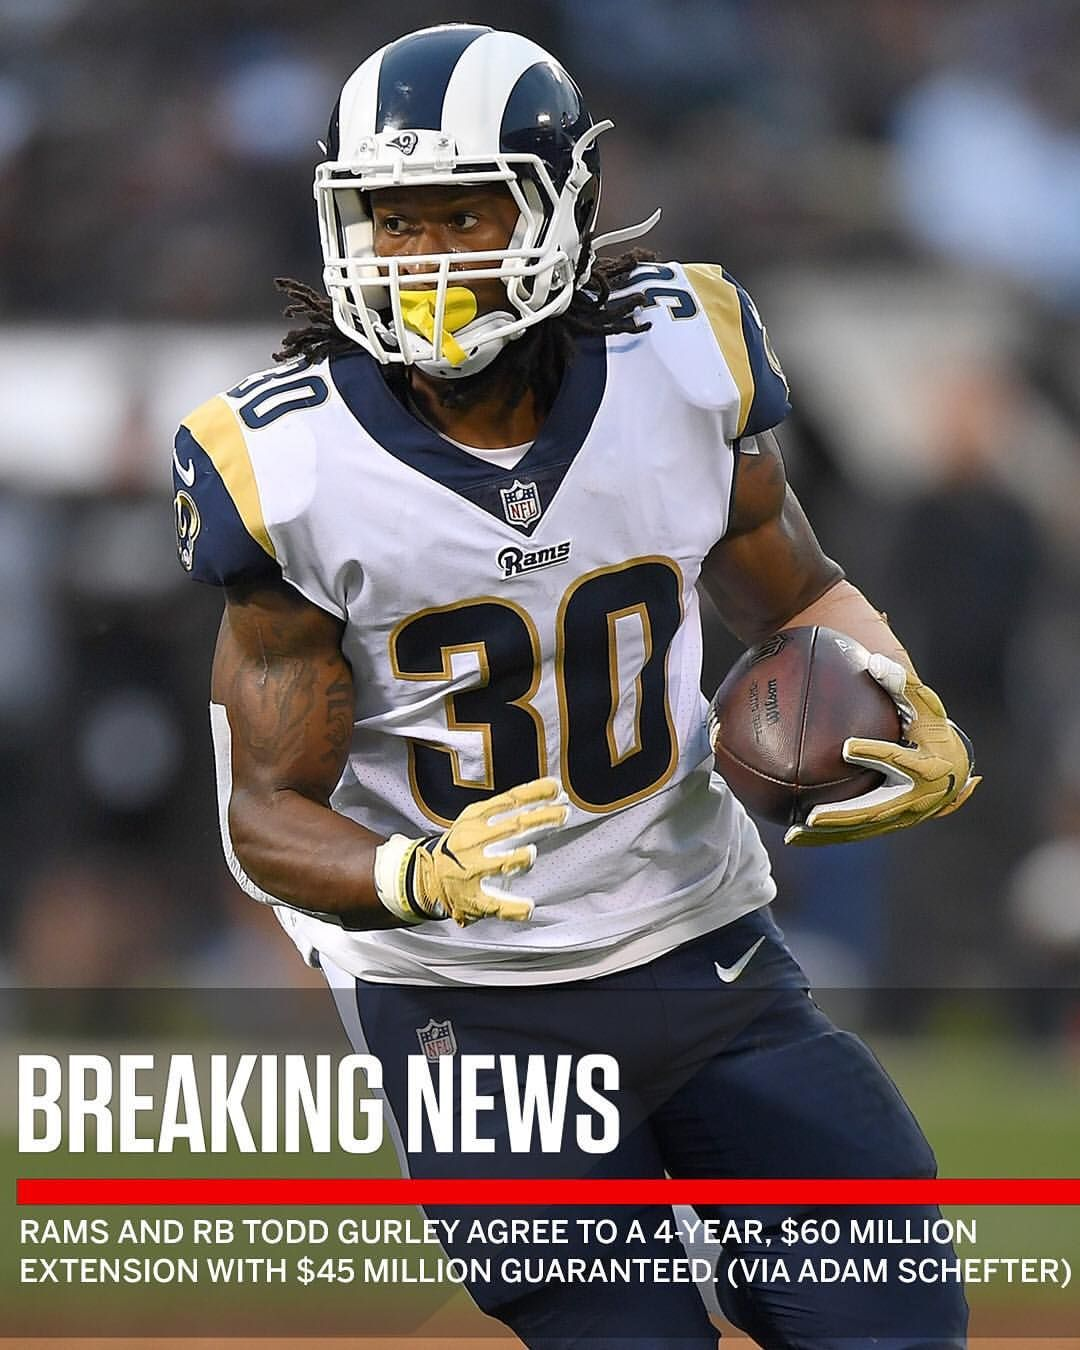 Rams Have Signed Tg4hunnid To The Largest Guaranteed Deal For A Running Back In League History Per Adamschefter Nfl History Running Back League